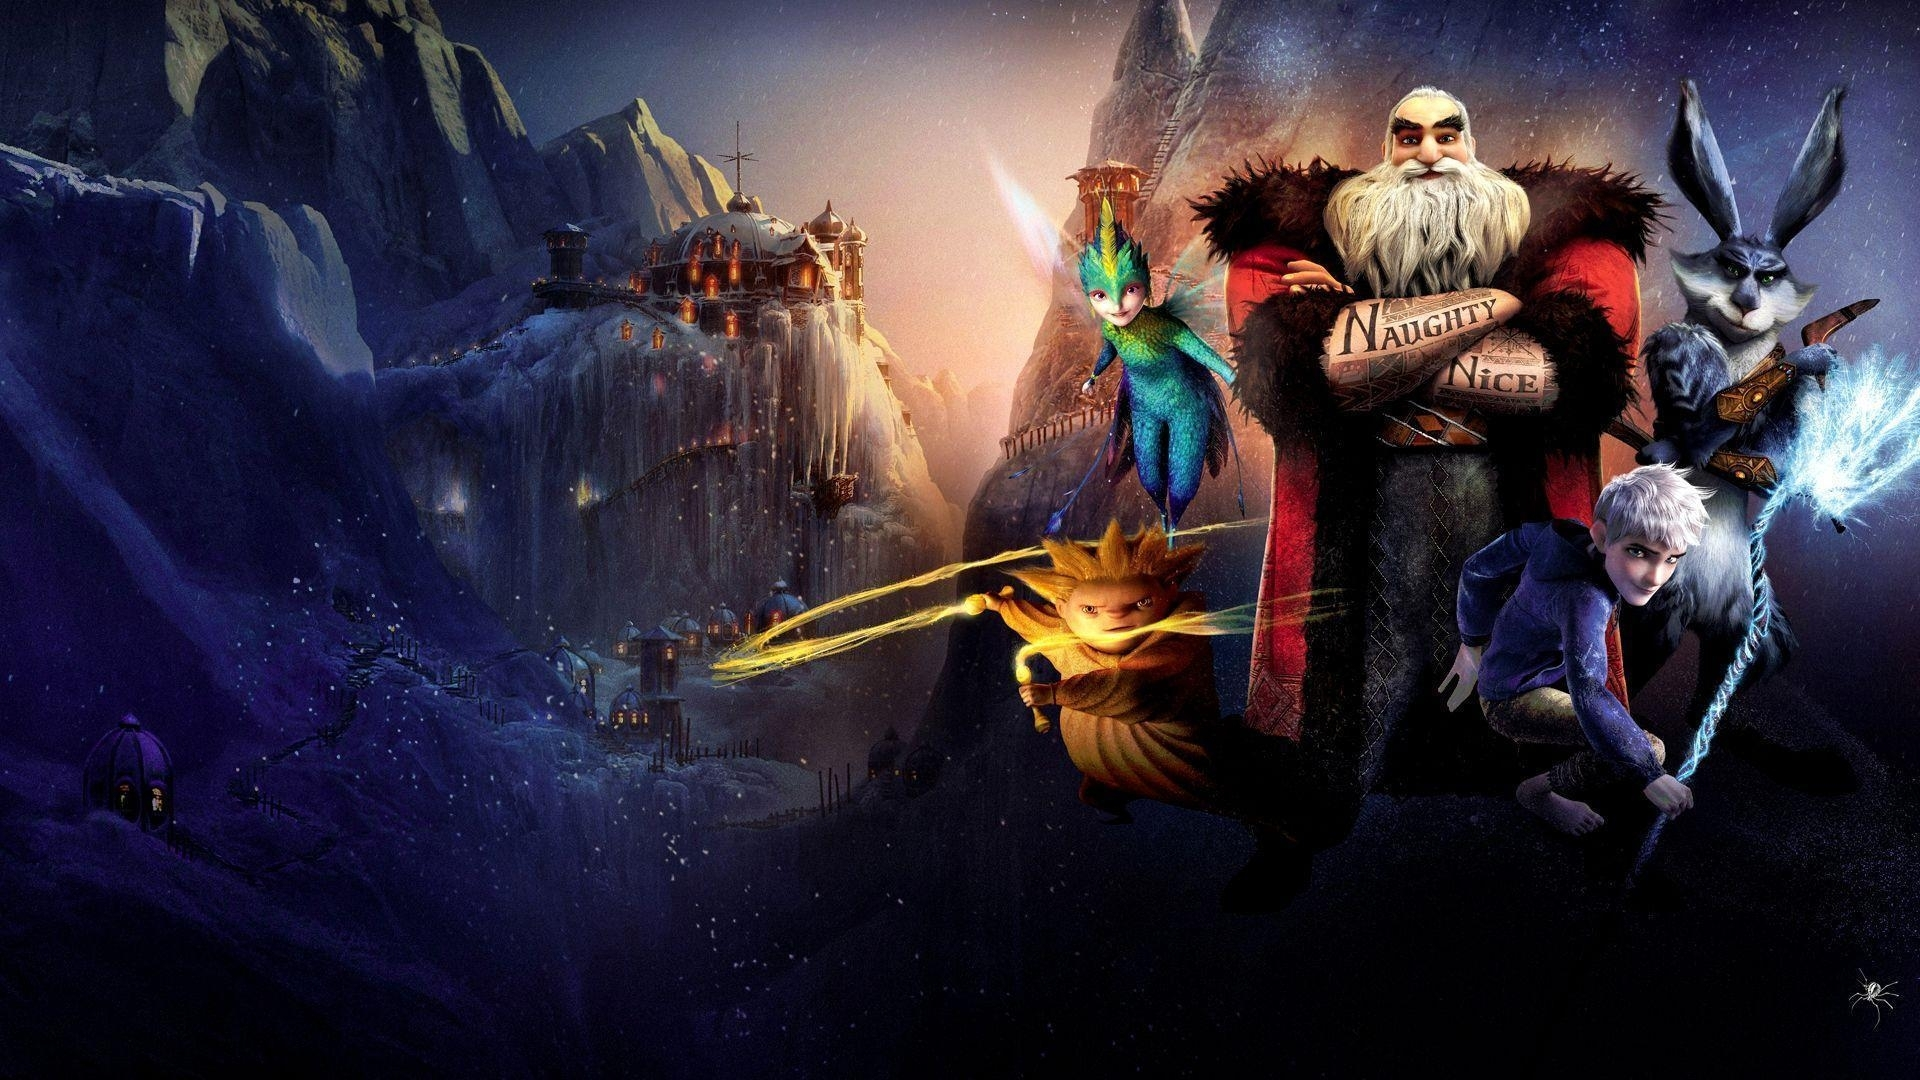 rise of the guardians wallpapers - wallpaper cave